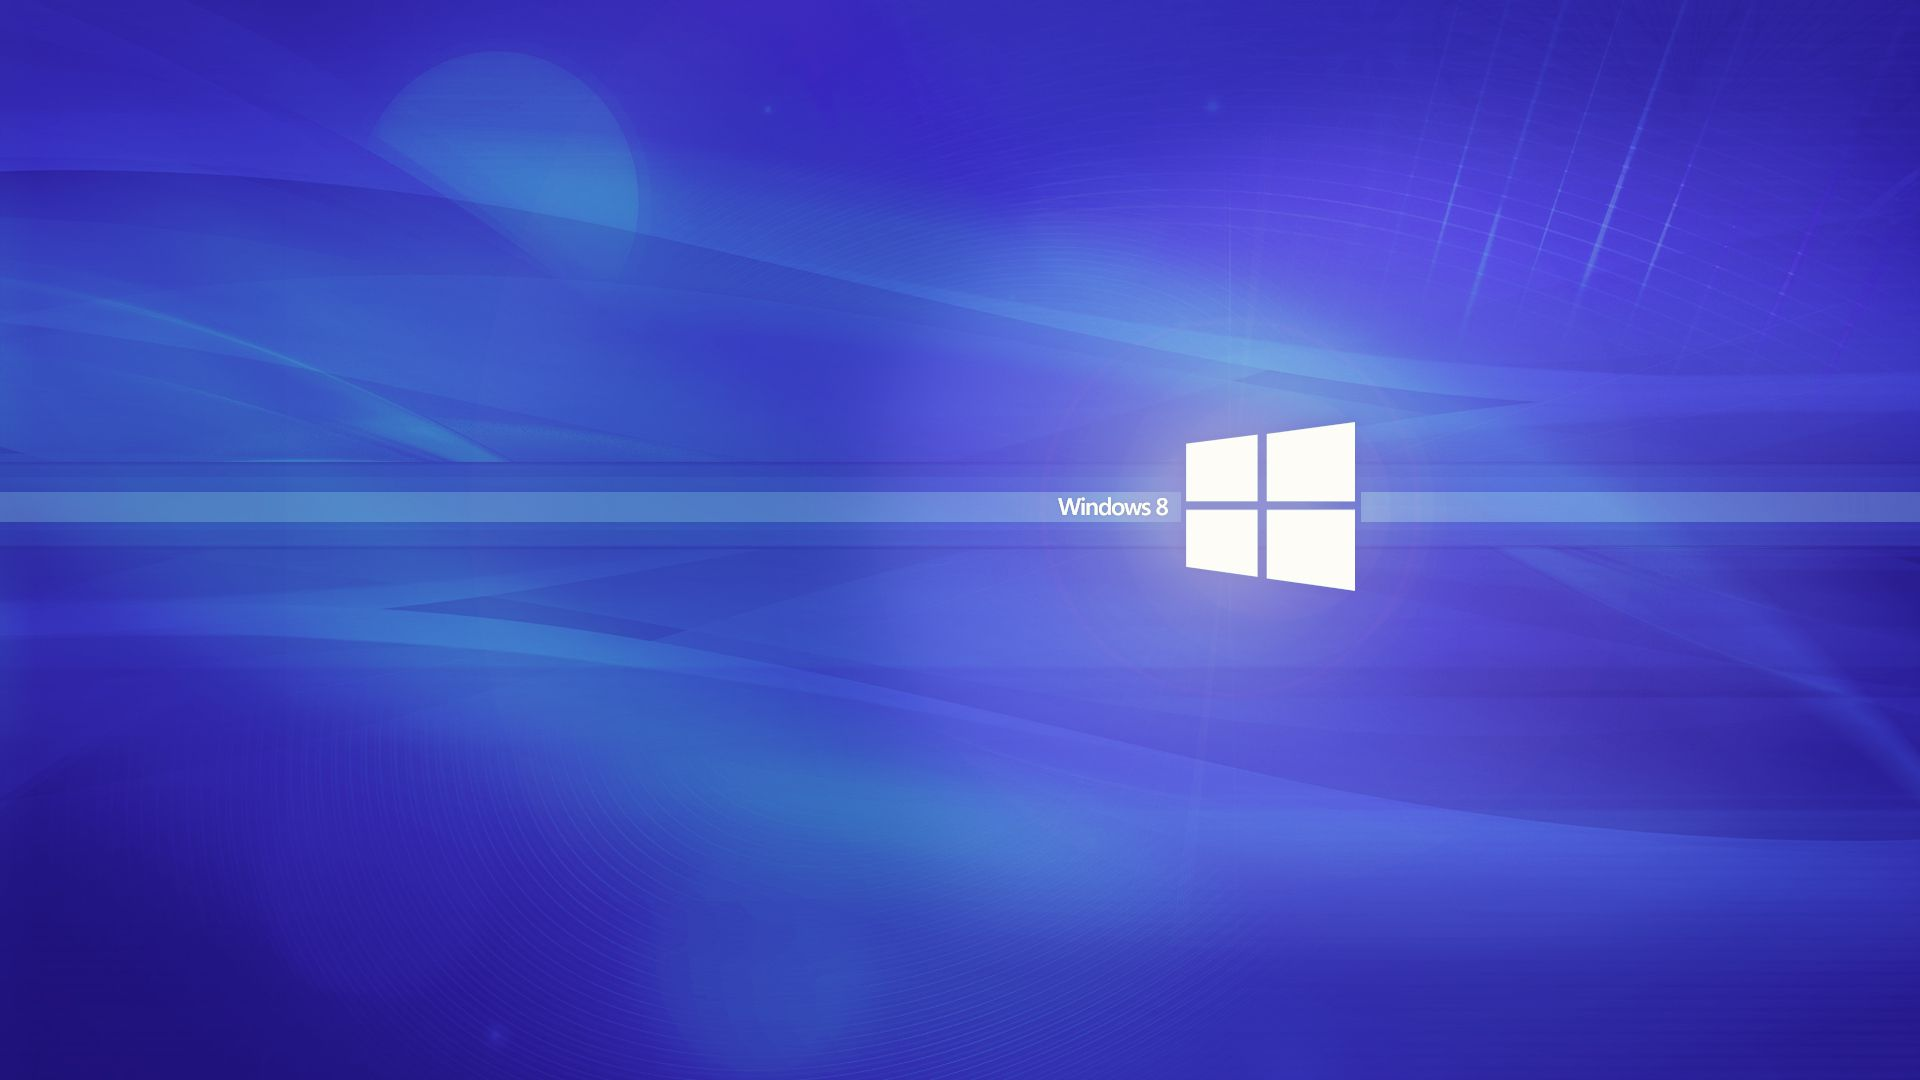 Windows 8 1 Wallpapers Top Free Windows 8 1 Backgrounds